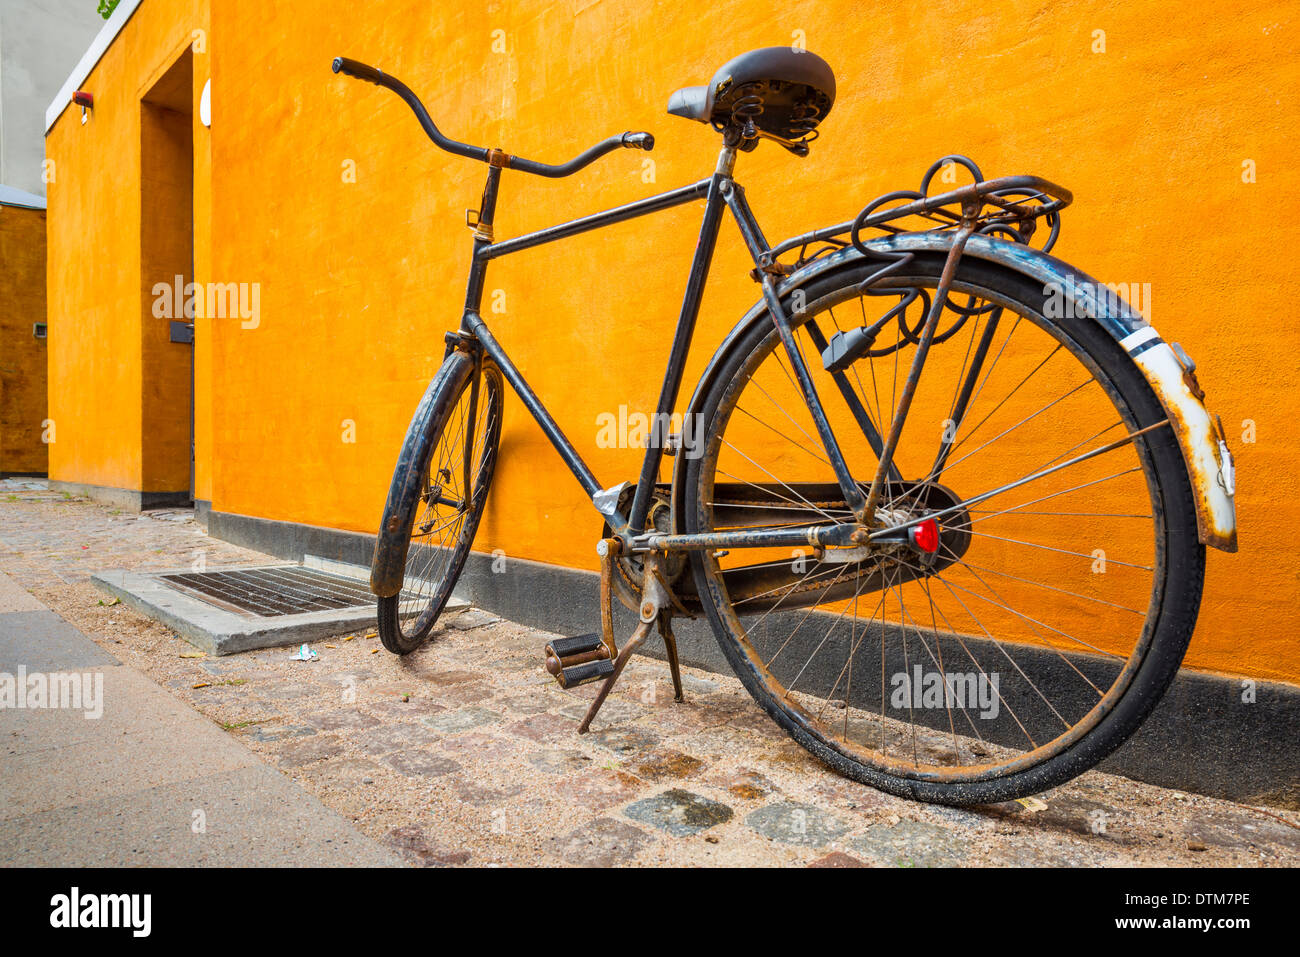 A bike on the sidewalk in Copenhagen, Denmark. - Stock Image